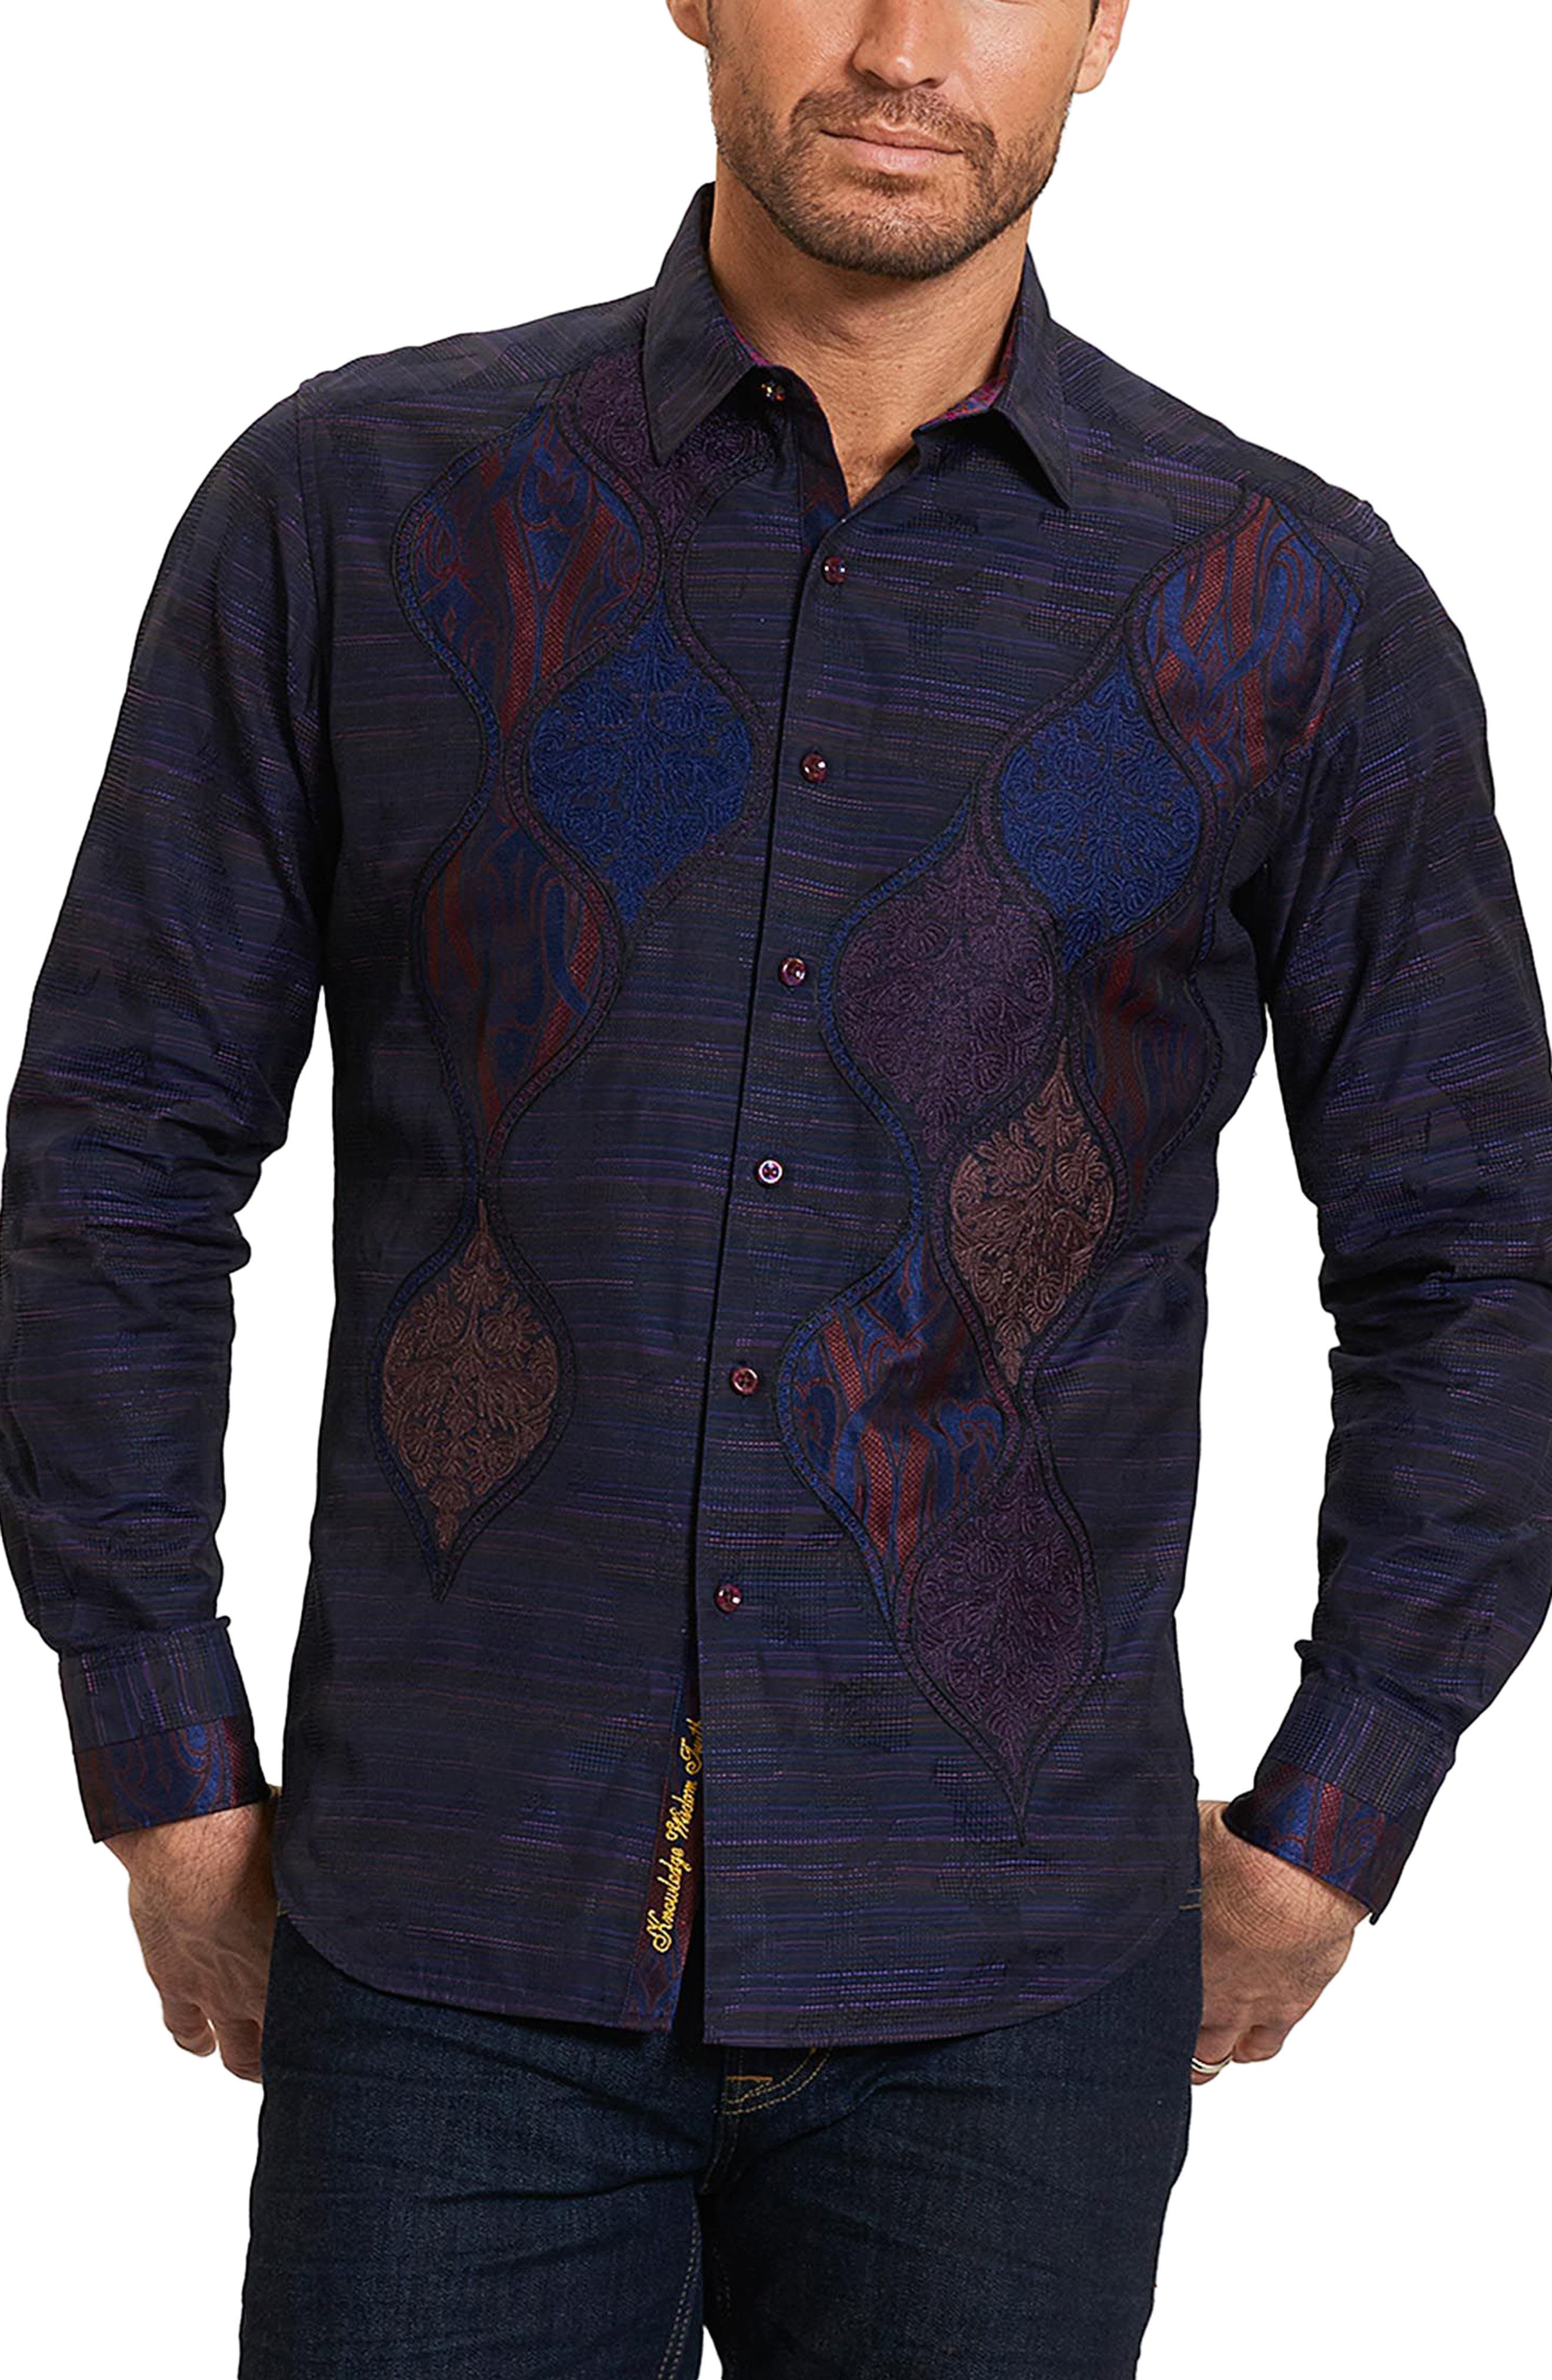 El Rey Classic Fit Embroidered Sport Shirt,                         Main,                         color, 510